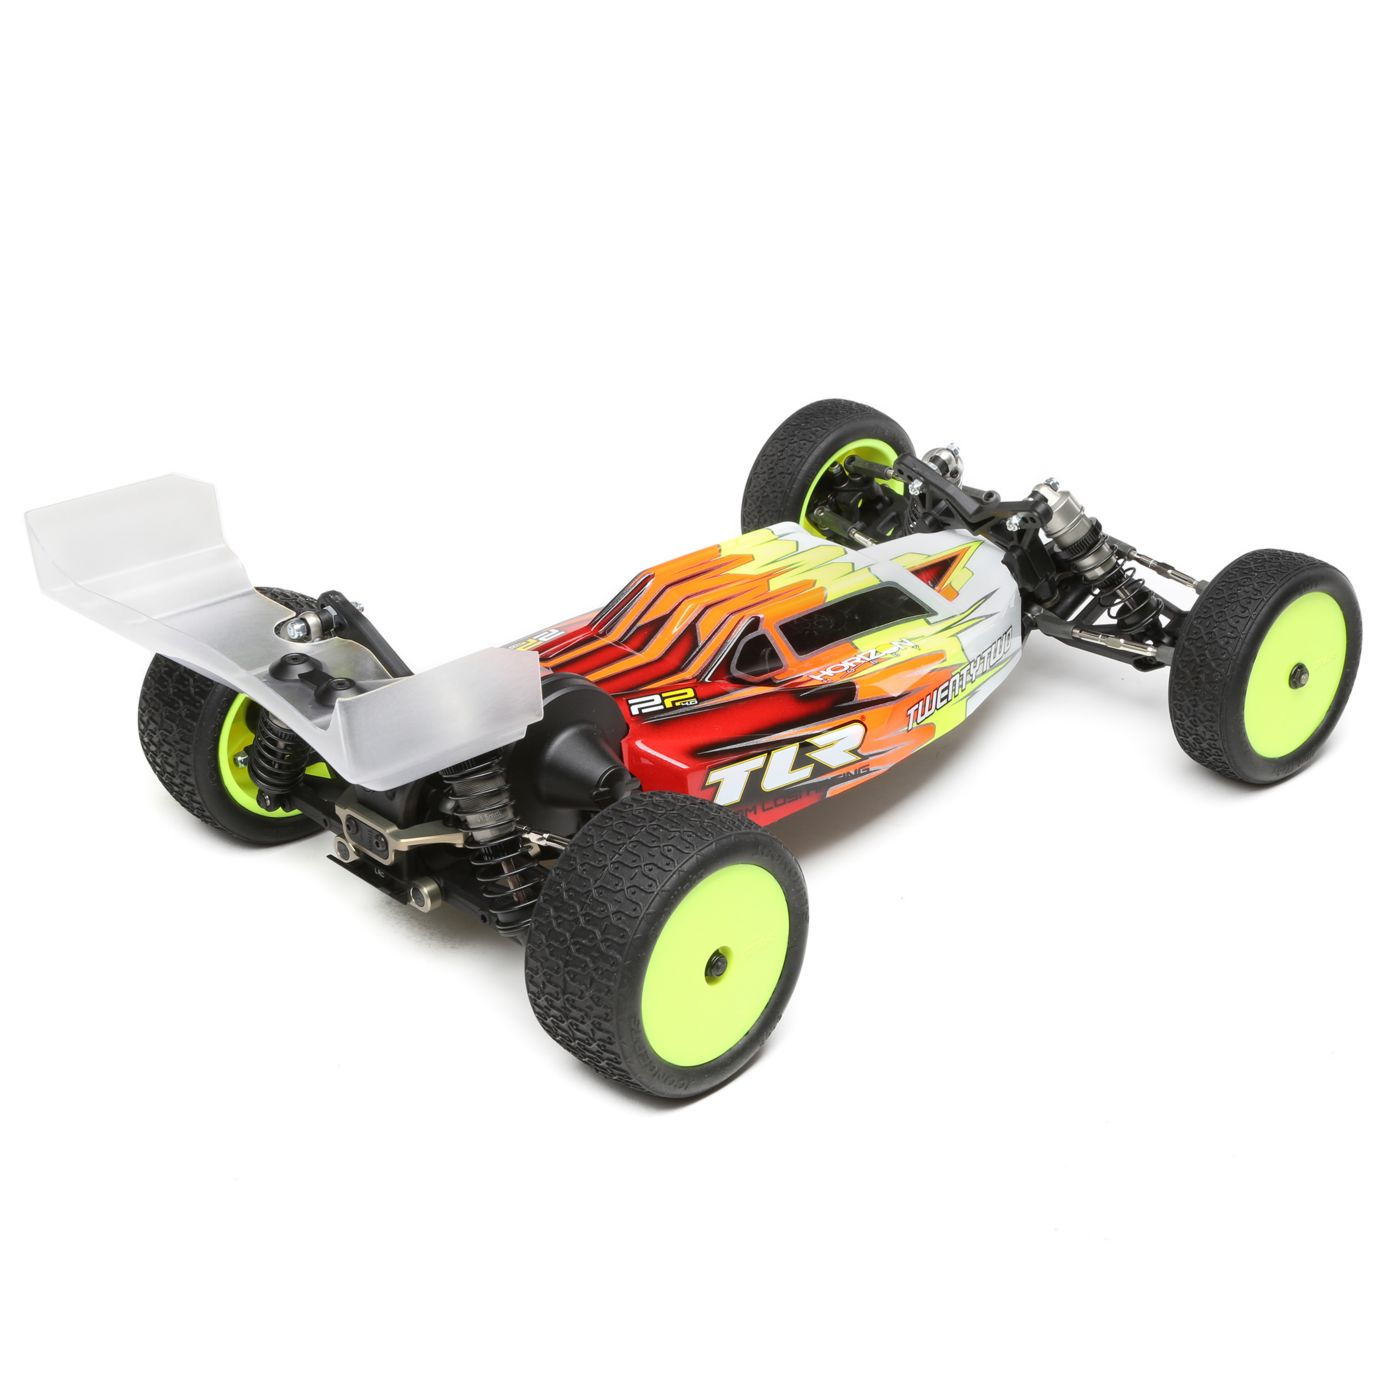 Team Losi Racing 22 4.0 - Rear